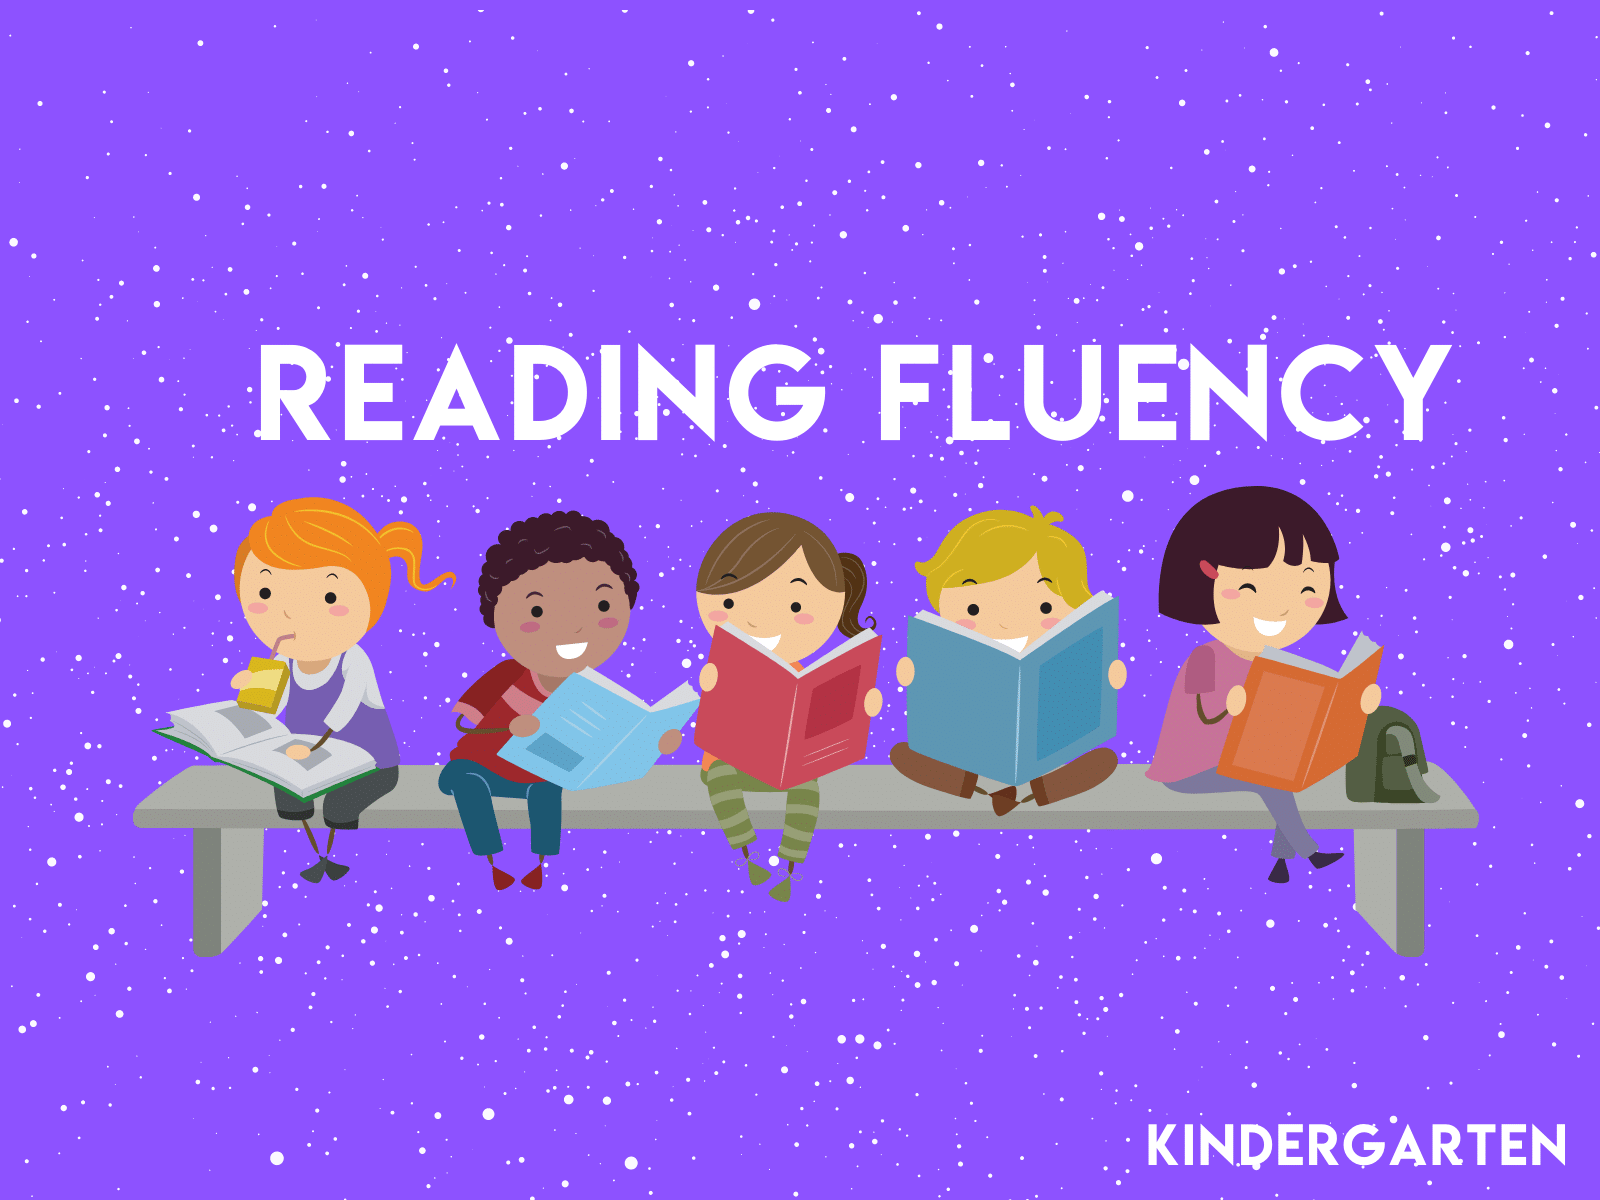 Kindergarten reading fluency worksheets to increase automaticity and reading speed.